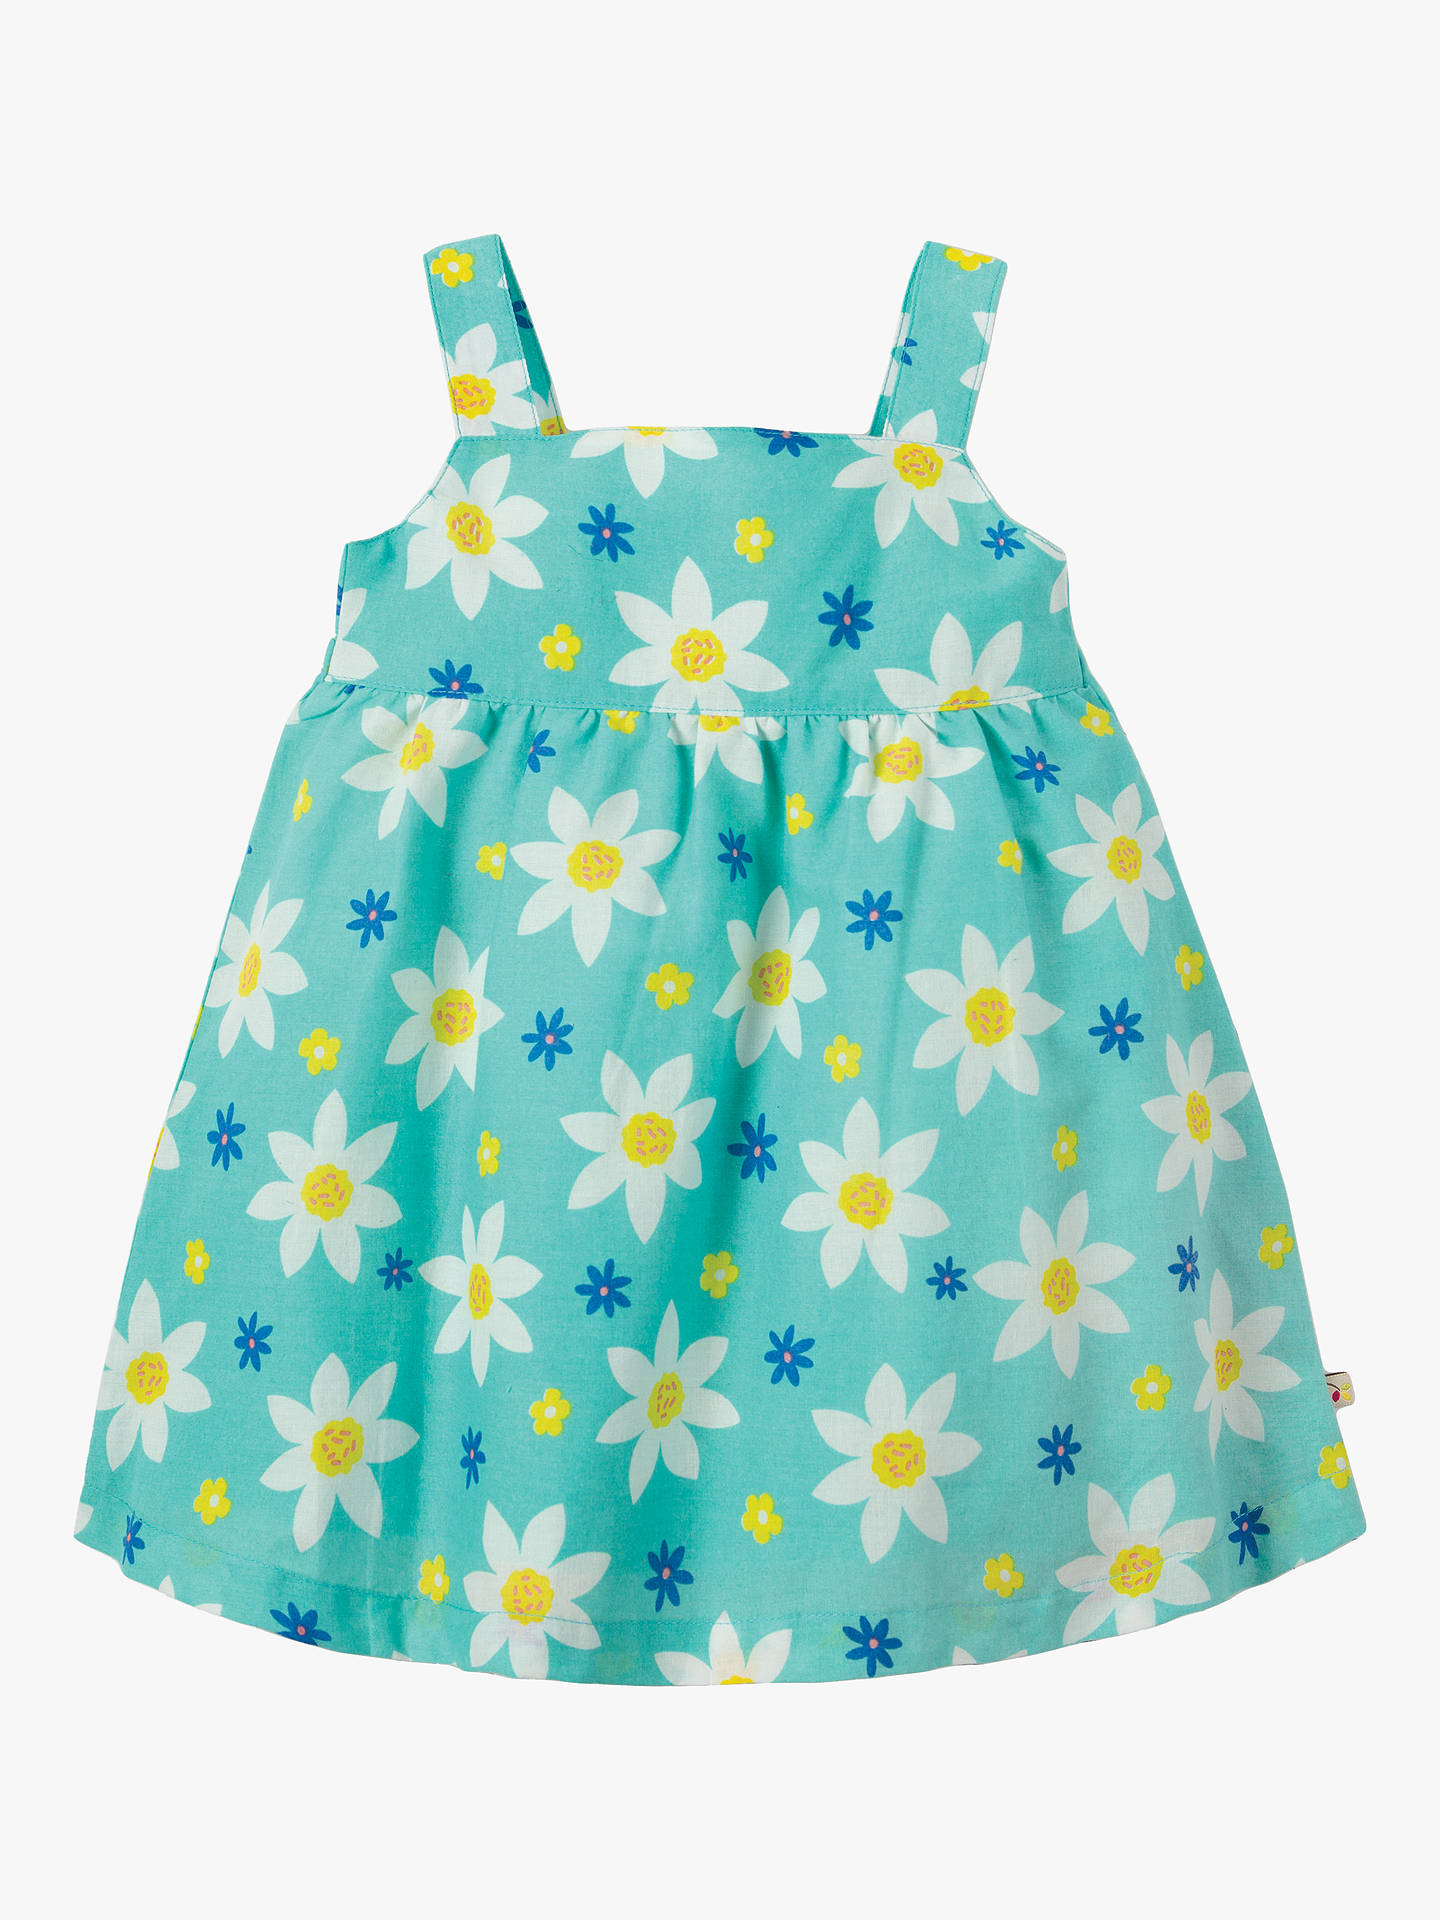 3346dfce8 Frugi Baby Organic Cotton Jess Floral Party Dress